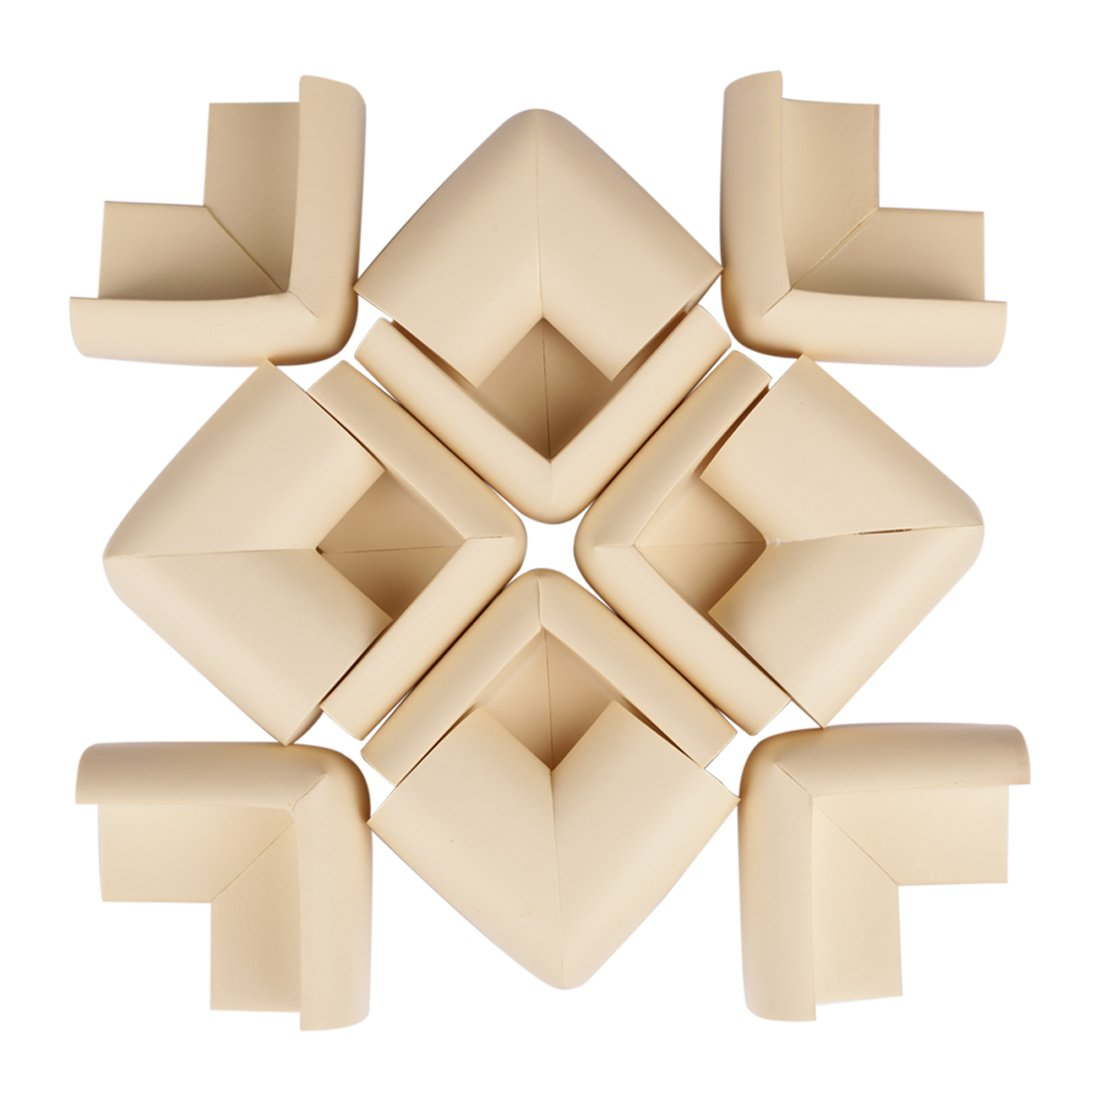 LEDMO 12 Pcs Baby Proofing Corner Guards,Soft and Nontoxic Edge&Corner Bumpers, Table Corner Guards for Child Safety Home Safety (Beige)